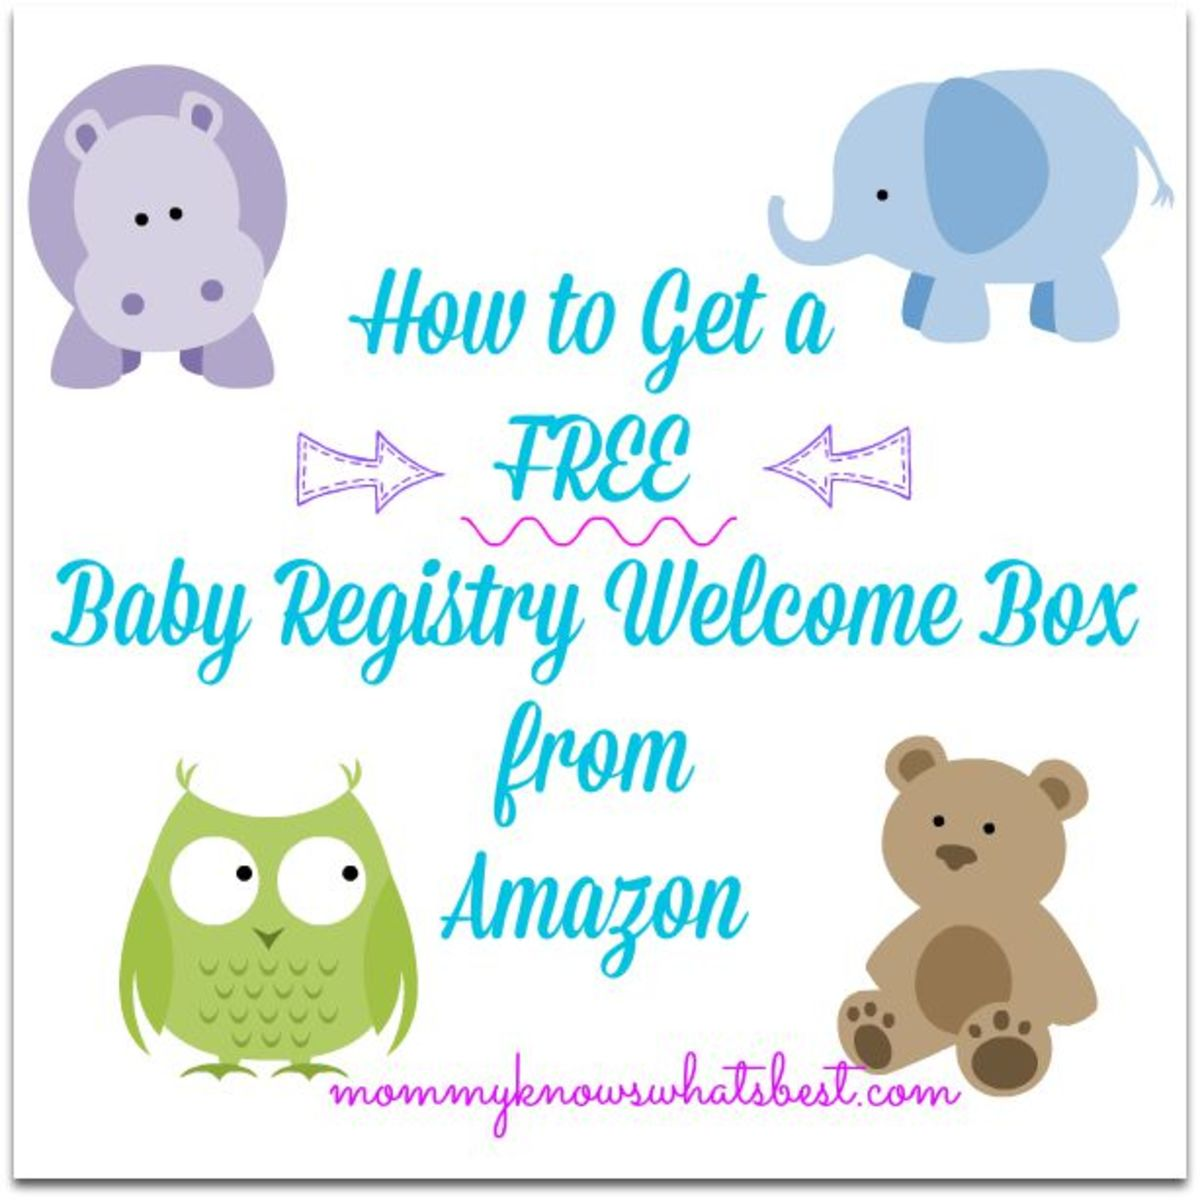 Go to Mommy Knows What's Best to find out how to get your free welcome box!